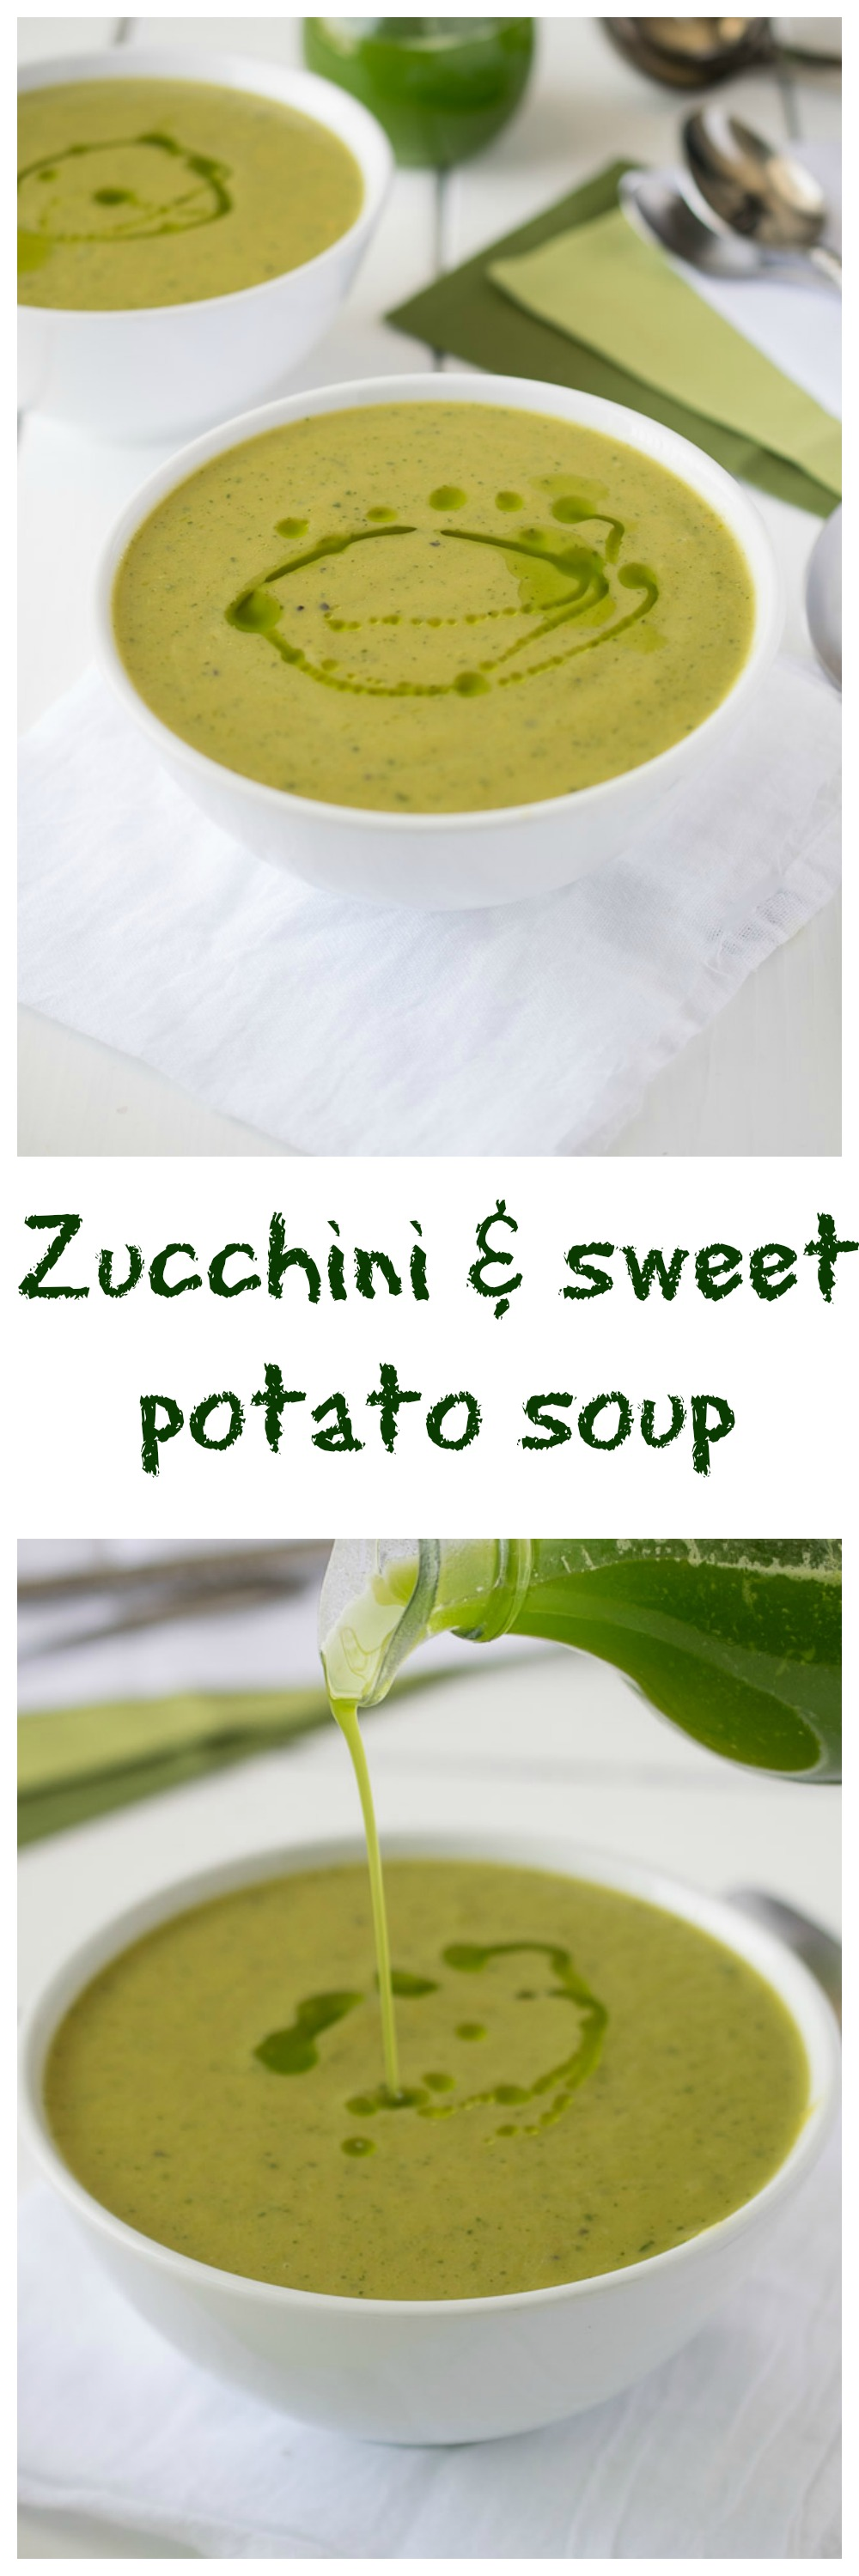 Zucchini and sweet potato soup-long pin copy